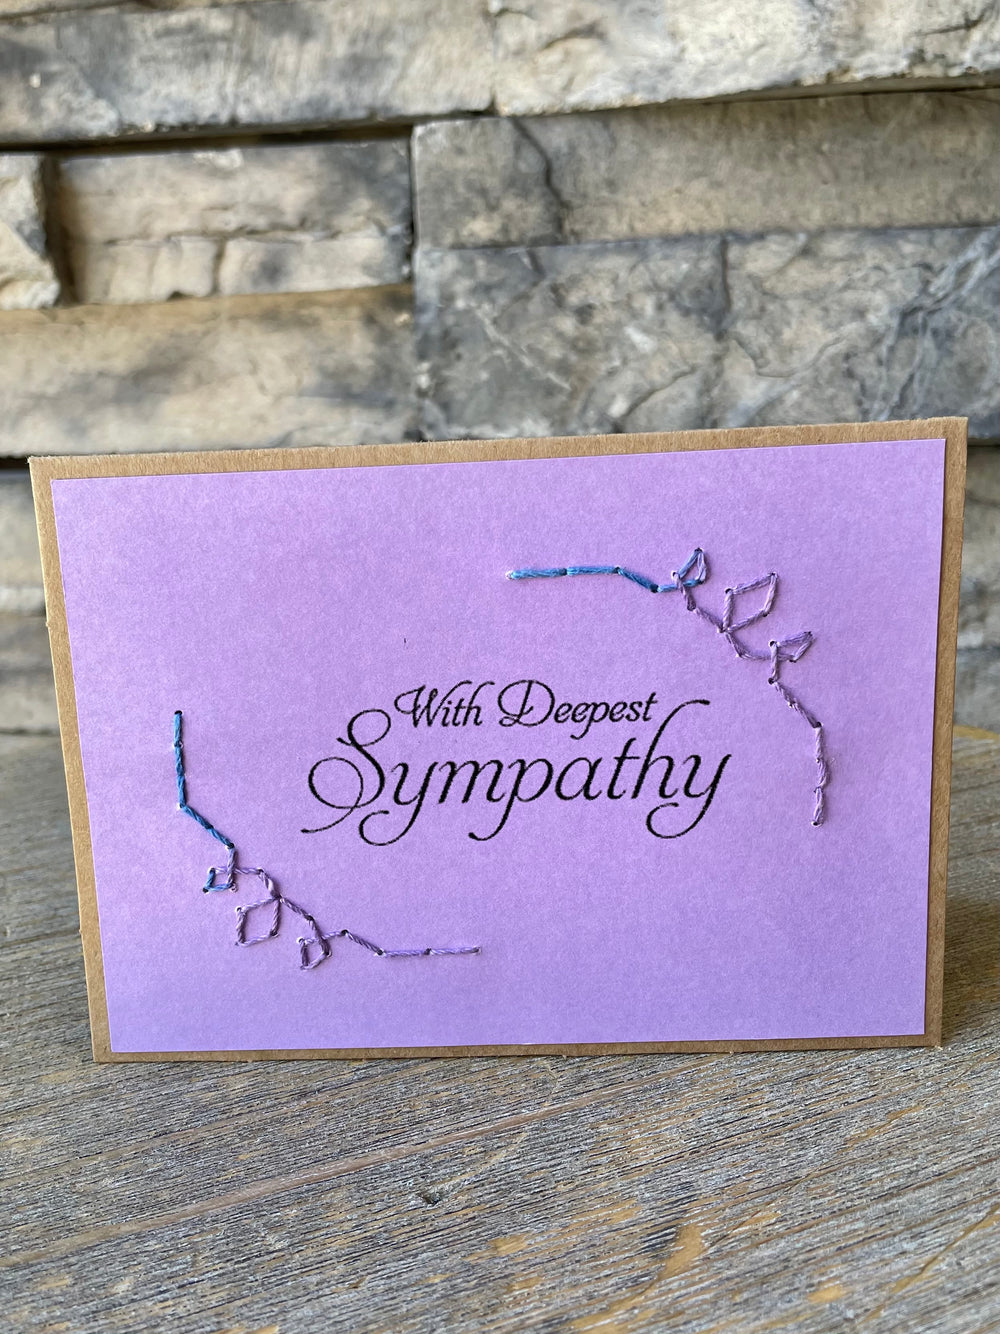 Sympathy Card by Rosie's Boutique from Haiti